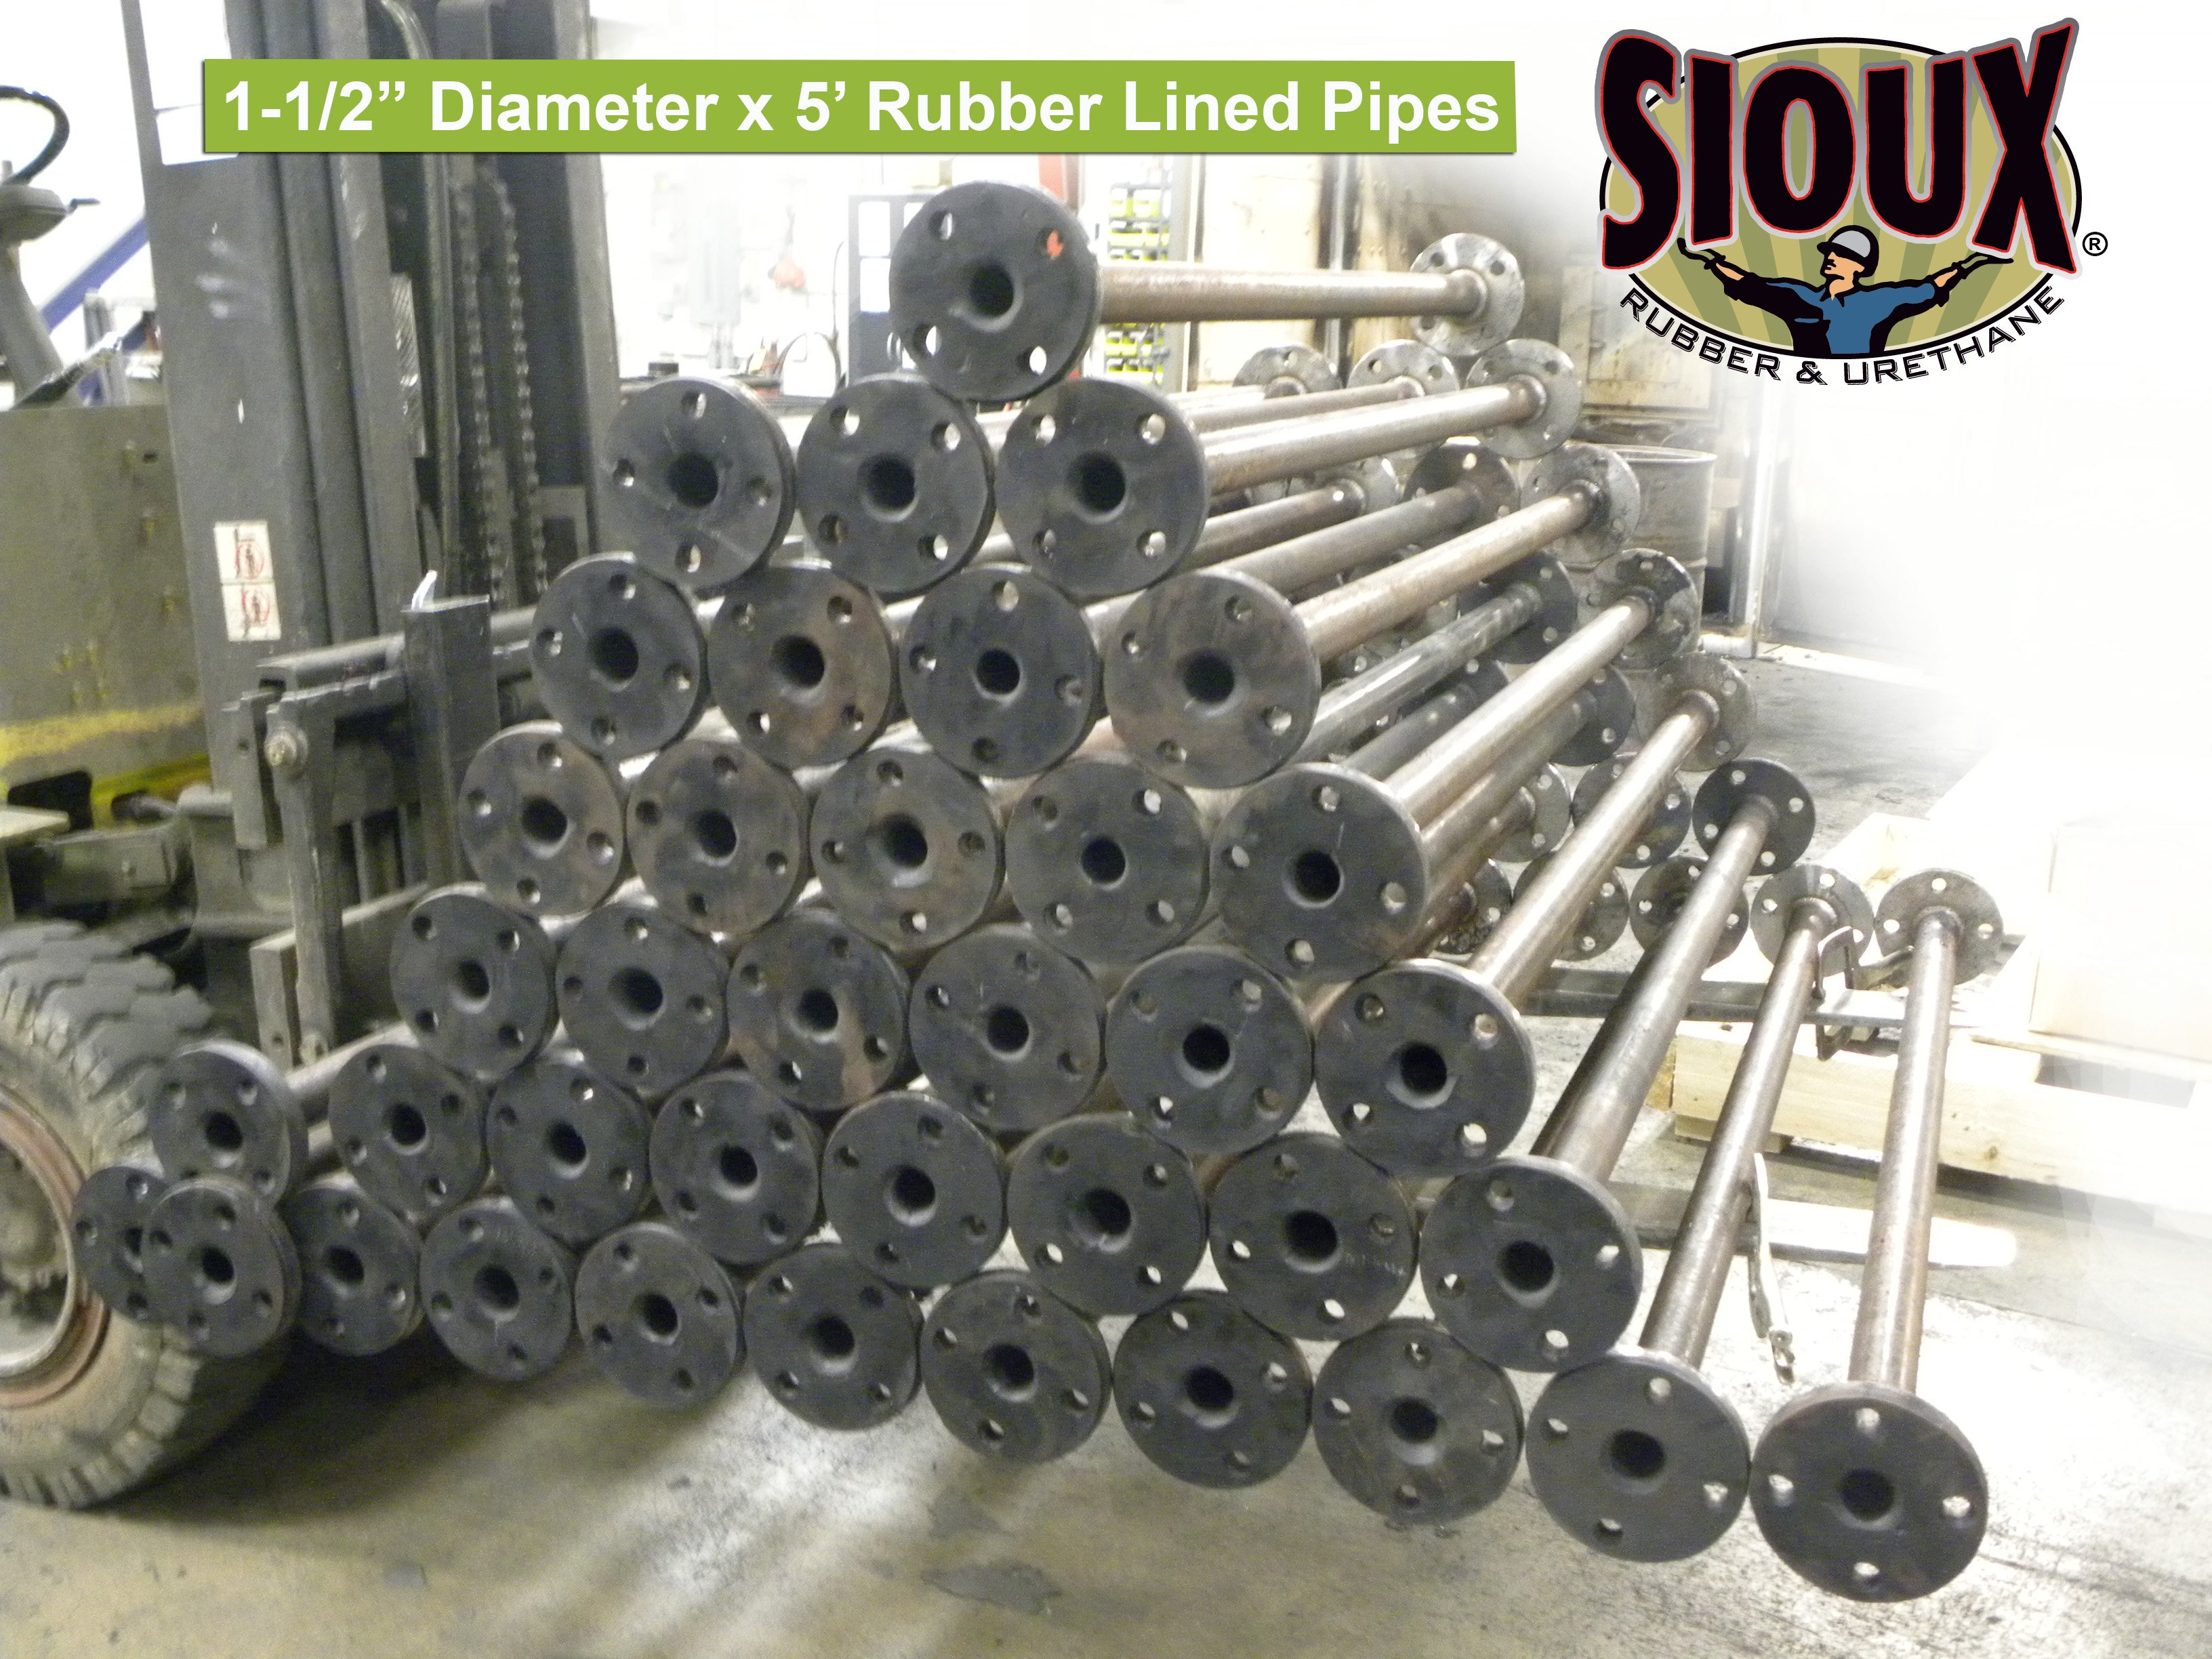 "1-1/2"" diameter Pipe-Yup, we can rubber line that!"